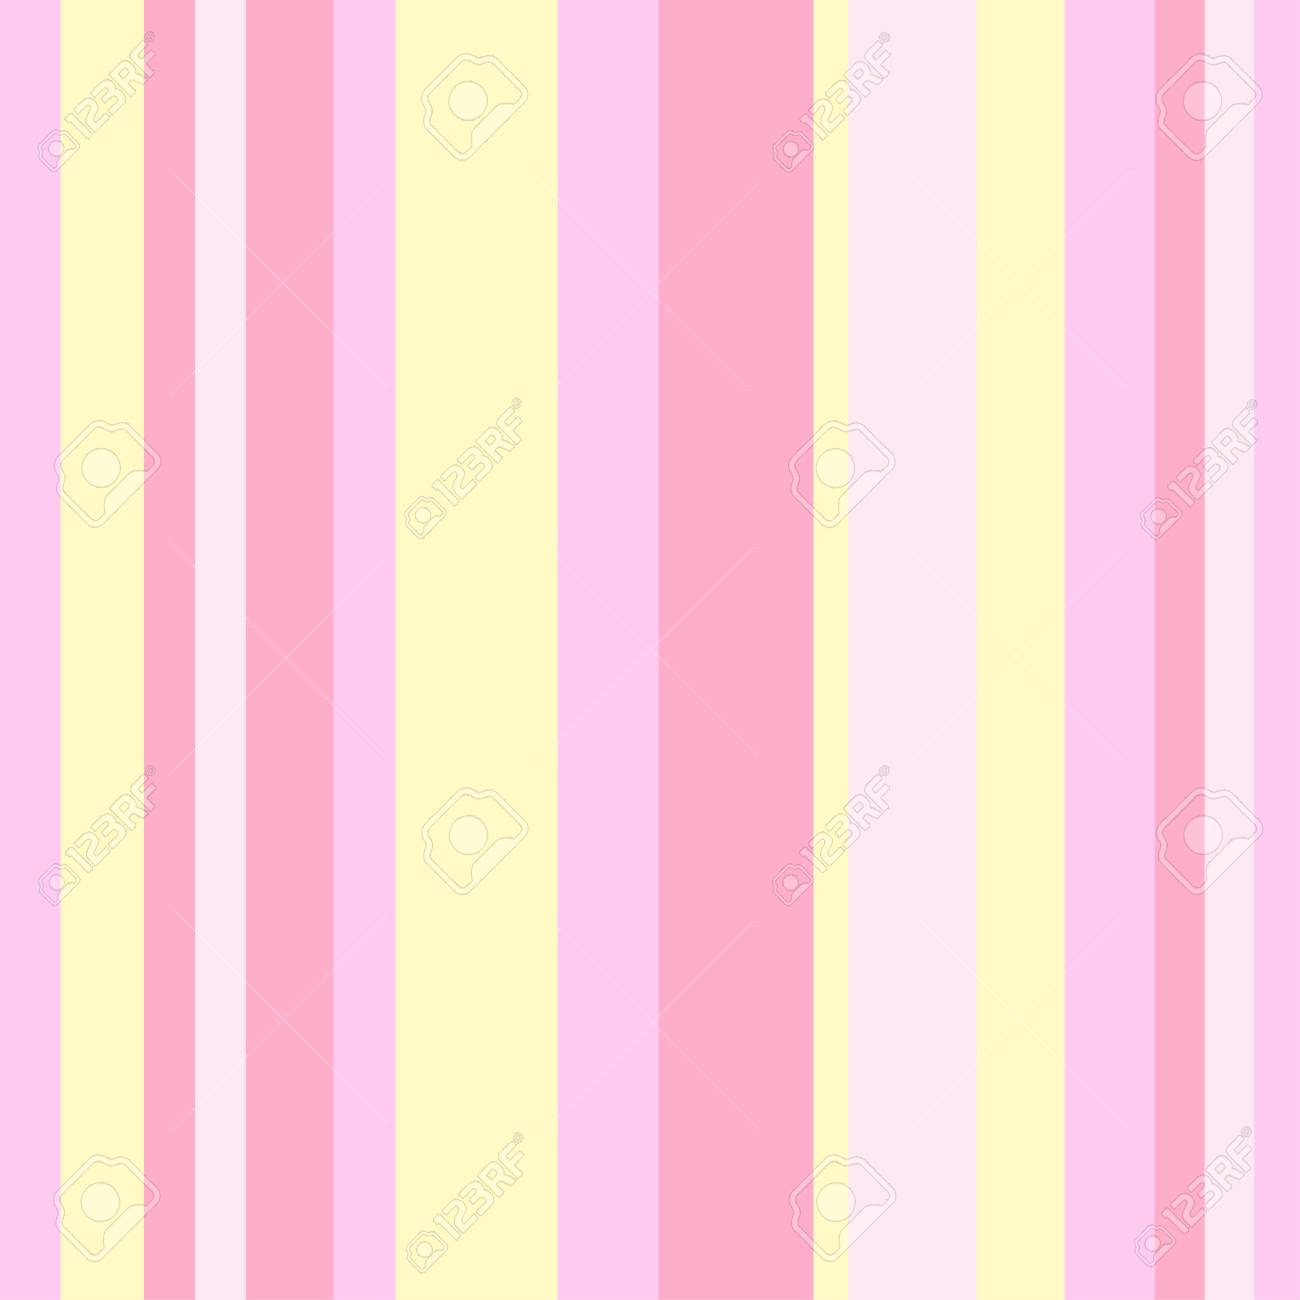 striped pattern with stylish and bright colors pink yellow royalty free cliparts vectors and stock illustration image 87636319 striped pattern with stylish and bright colors pink yellow